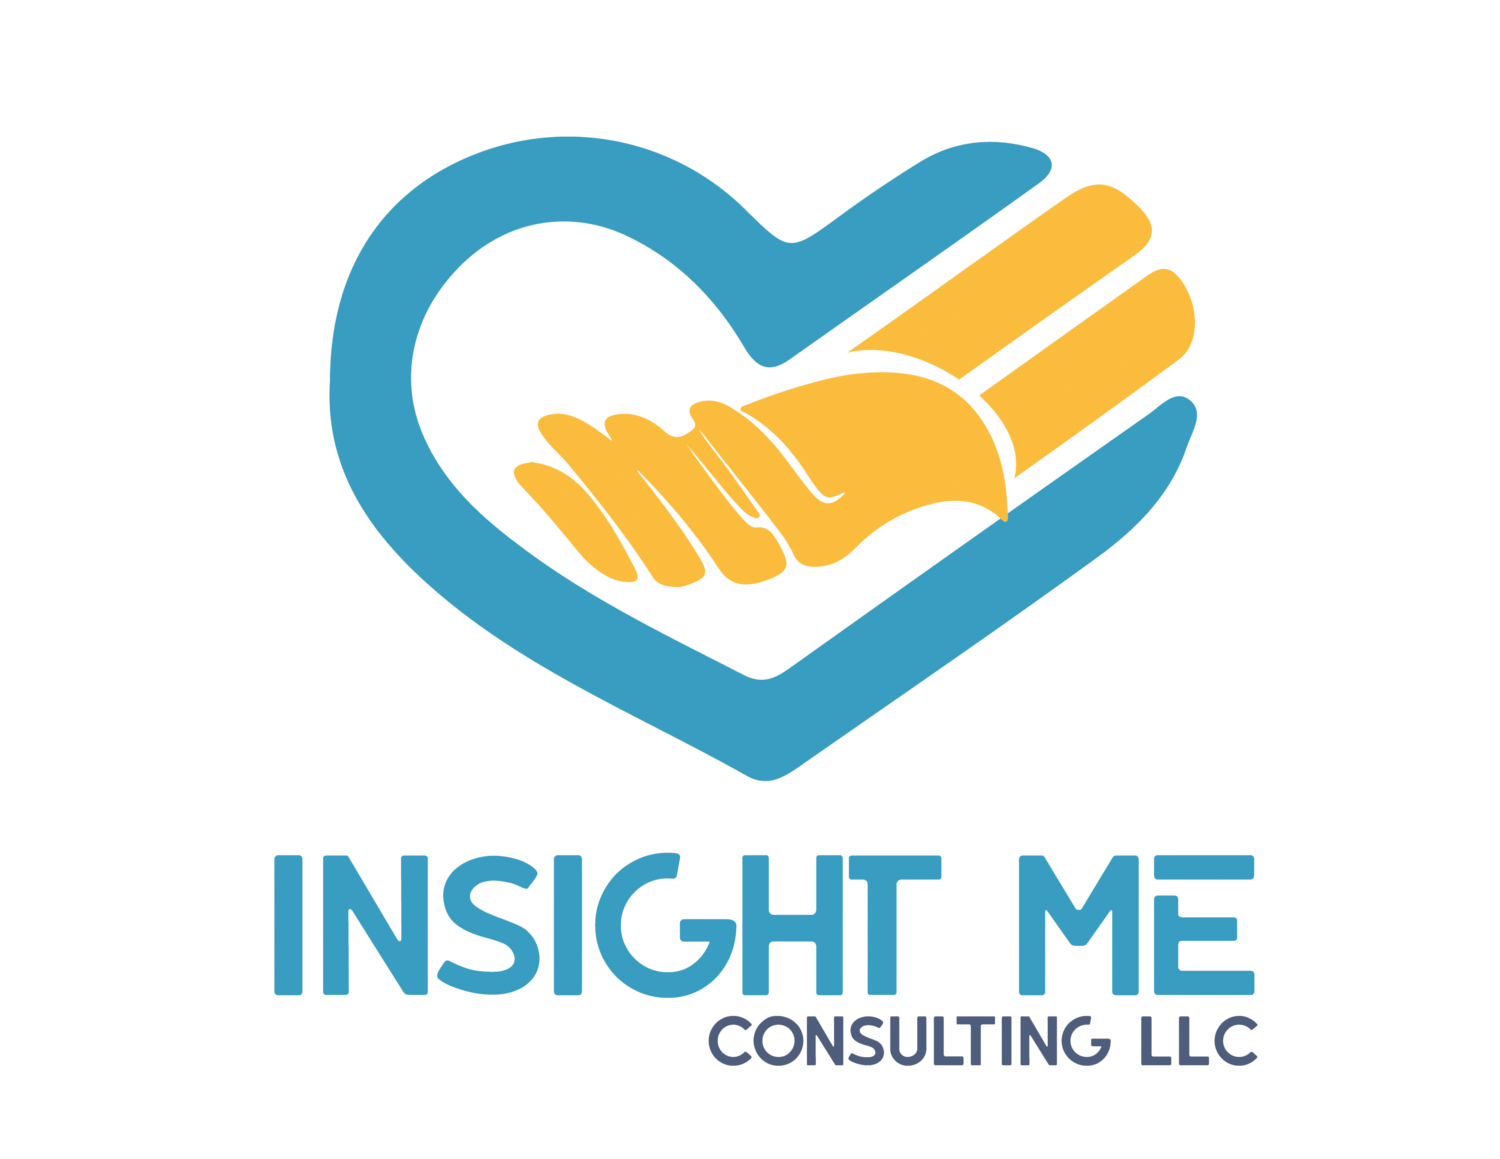 Insight Me Consulting Inc